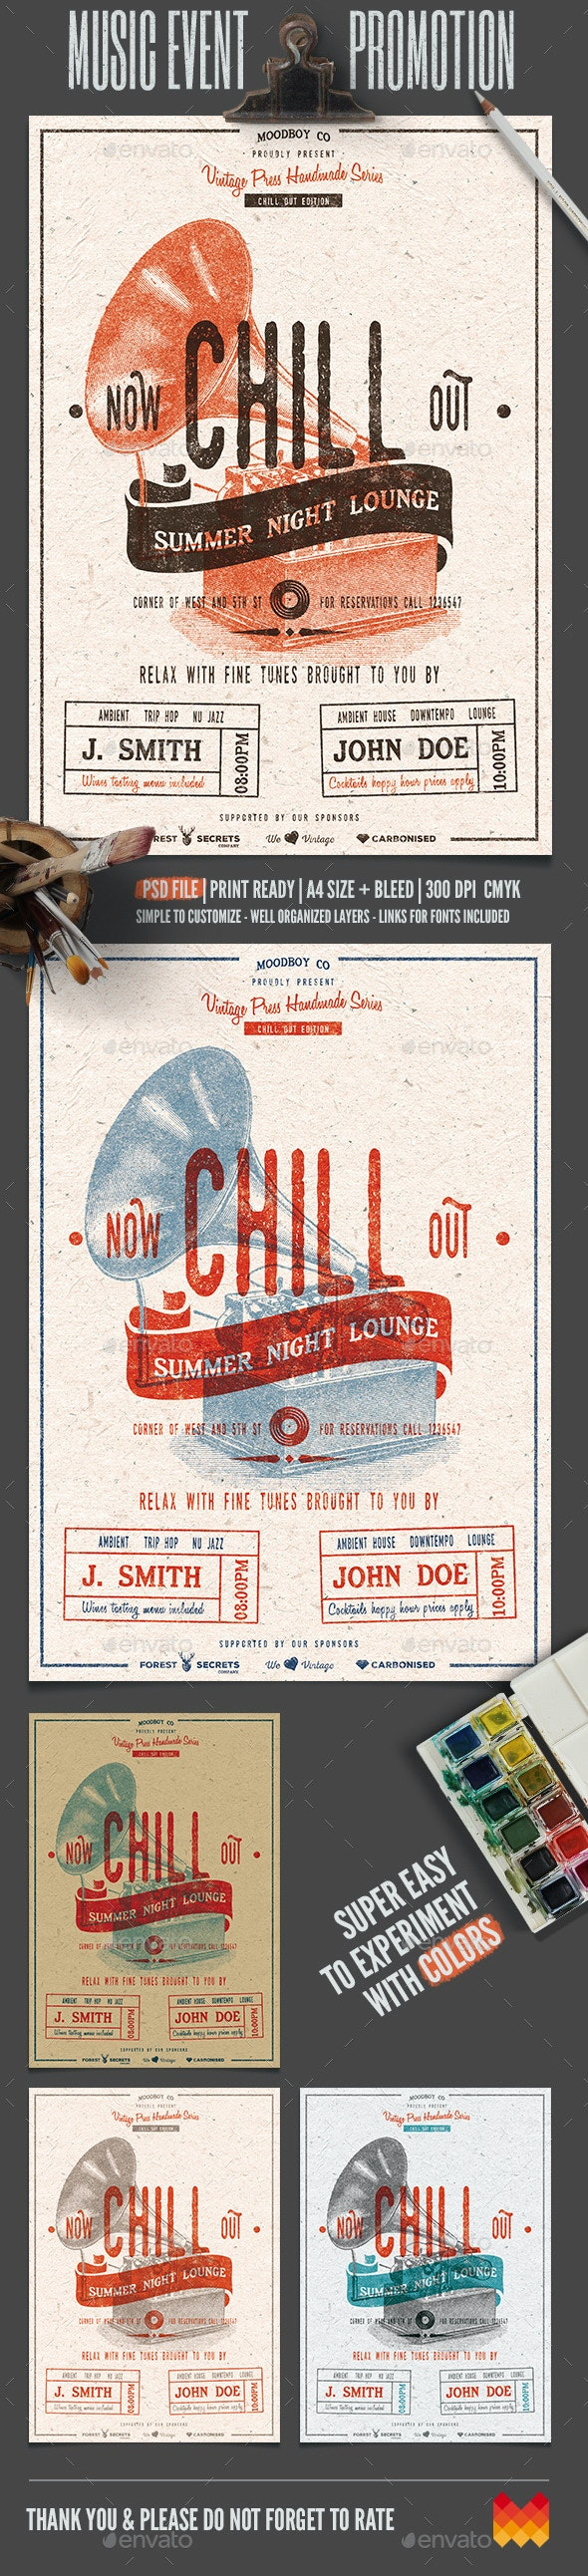 Chill Out - Lounge Flyer/Poster - Flyers Print Templates